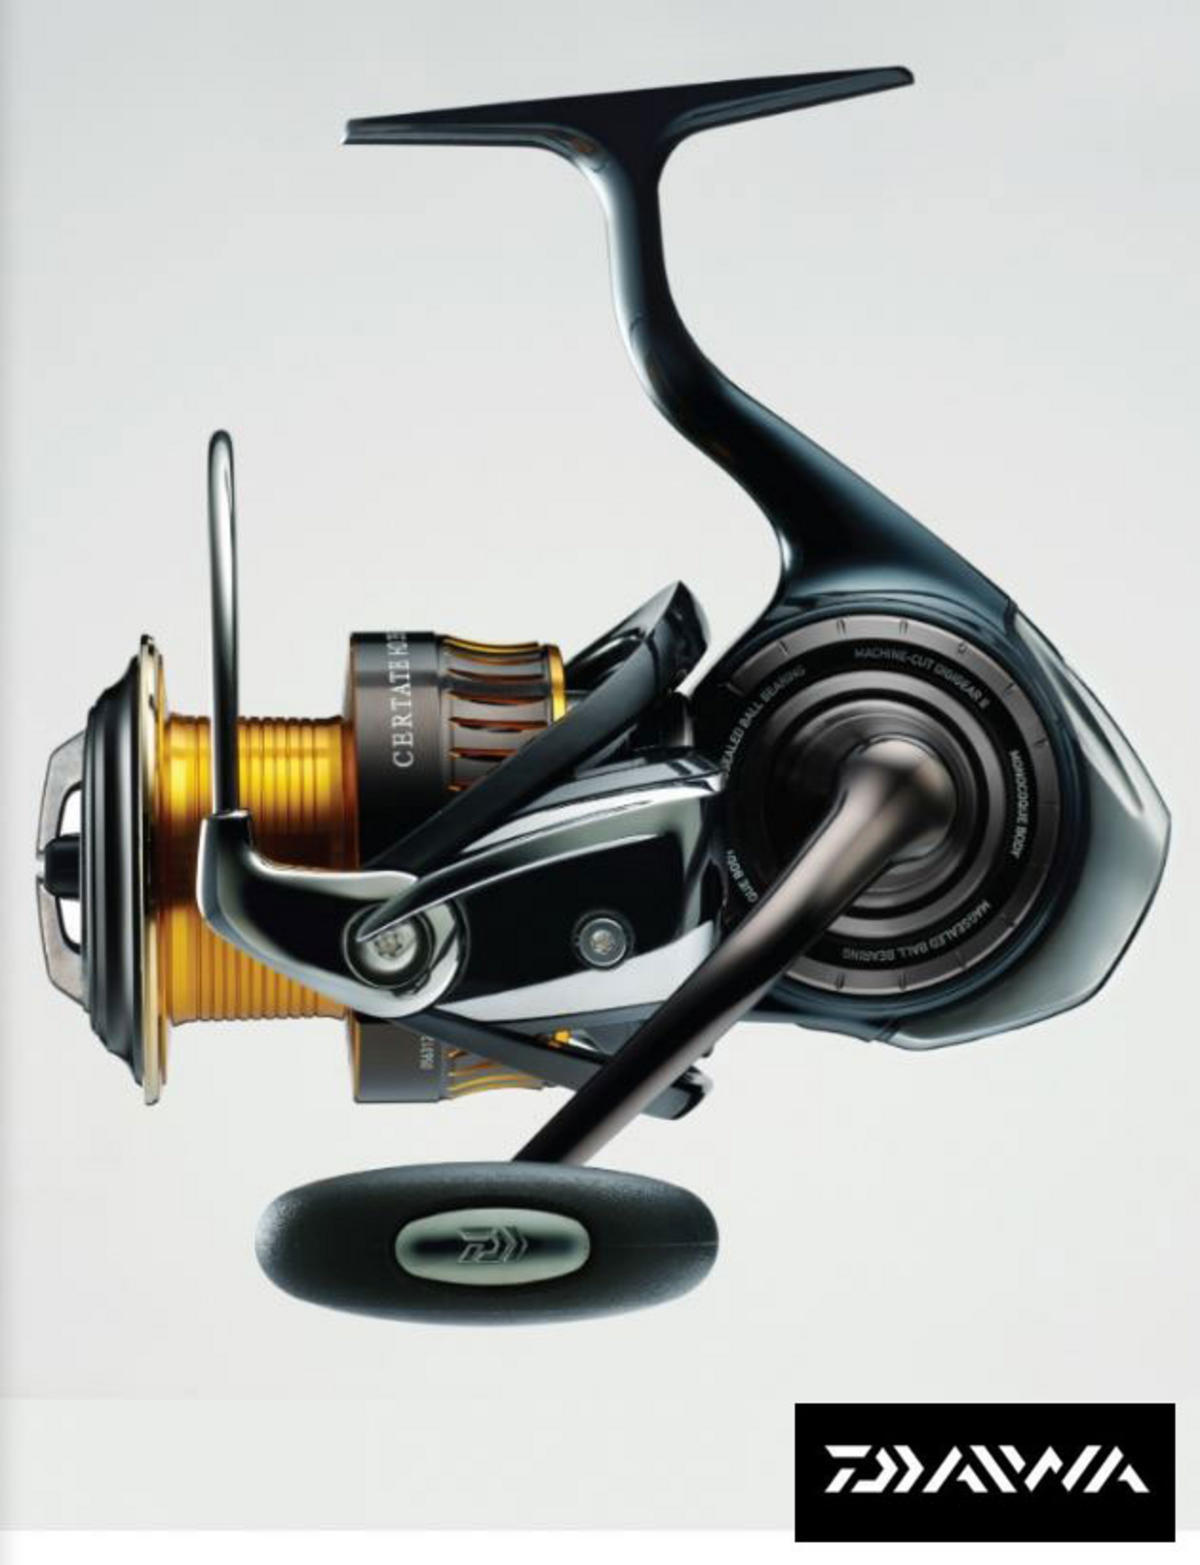 New Daiwa 16 Certate HD 4000H Spinning Reel Model No. 16 CERTATE HD 4000H